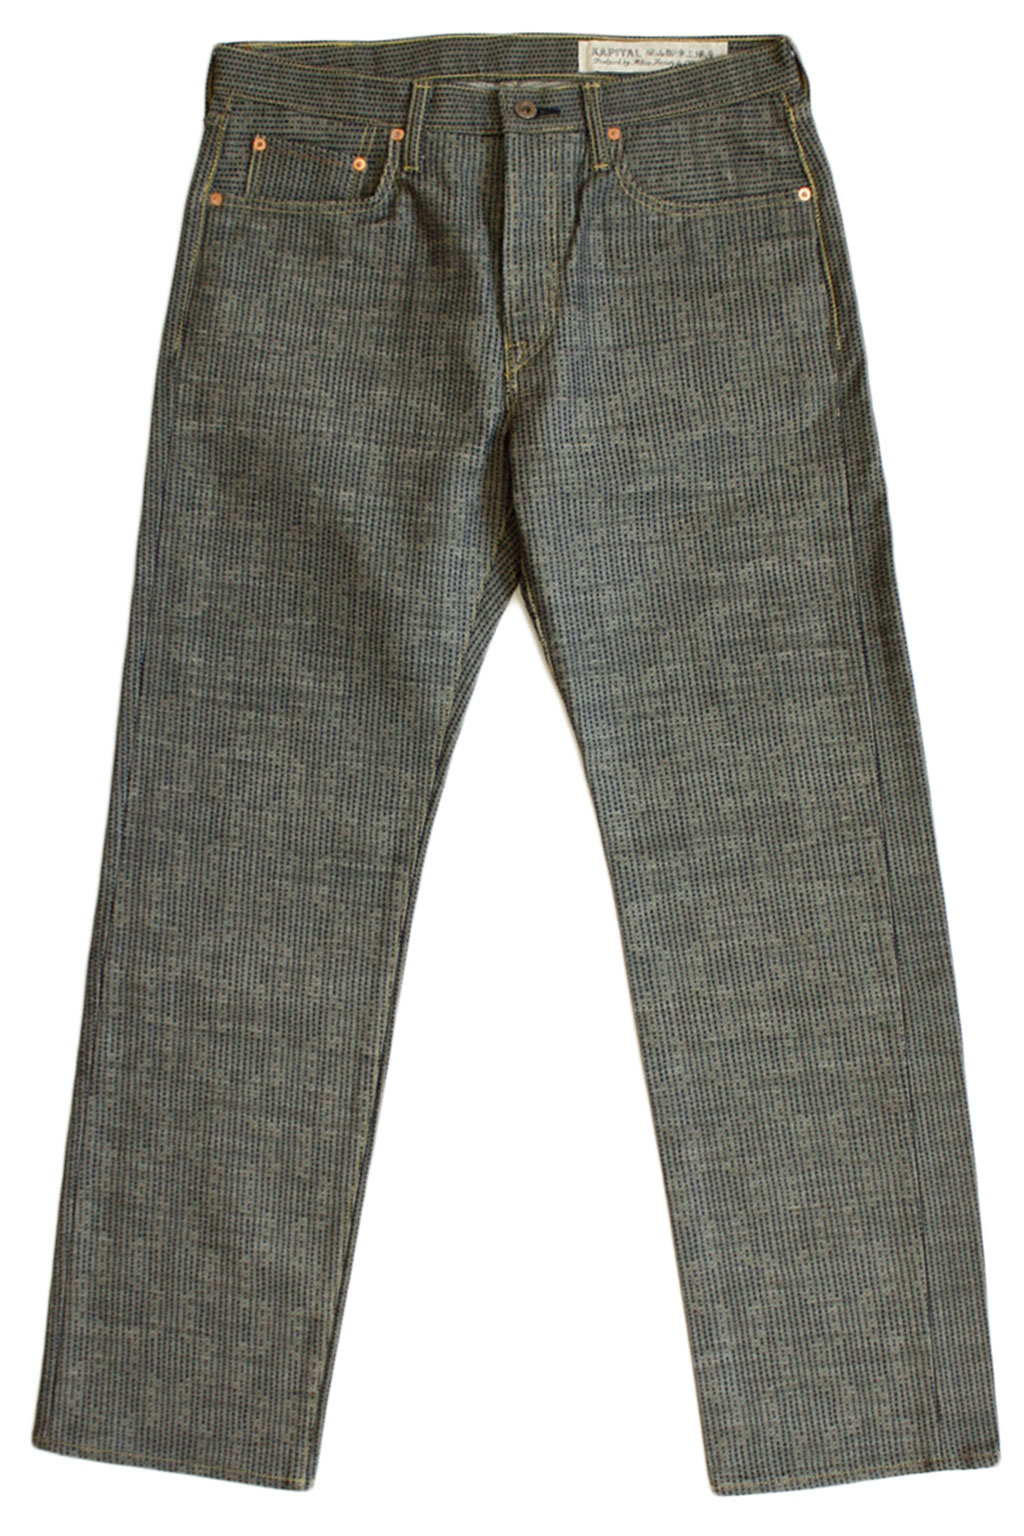 Century Denim 5P CISCO N7S - Grey